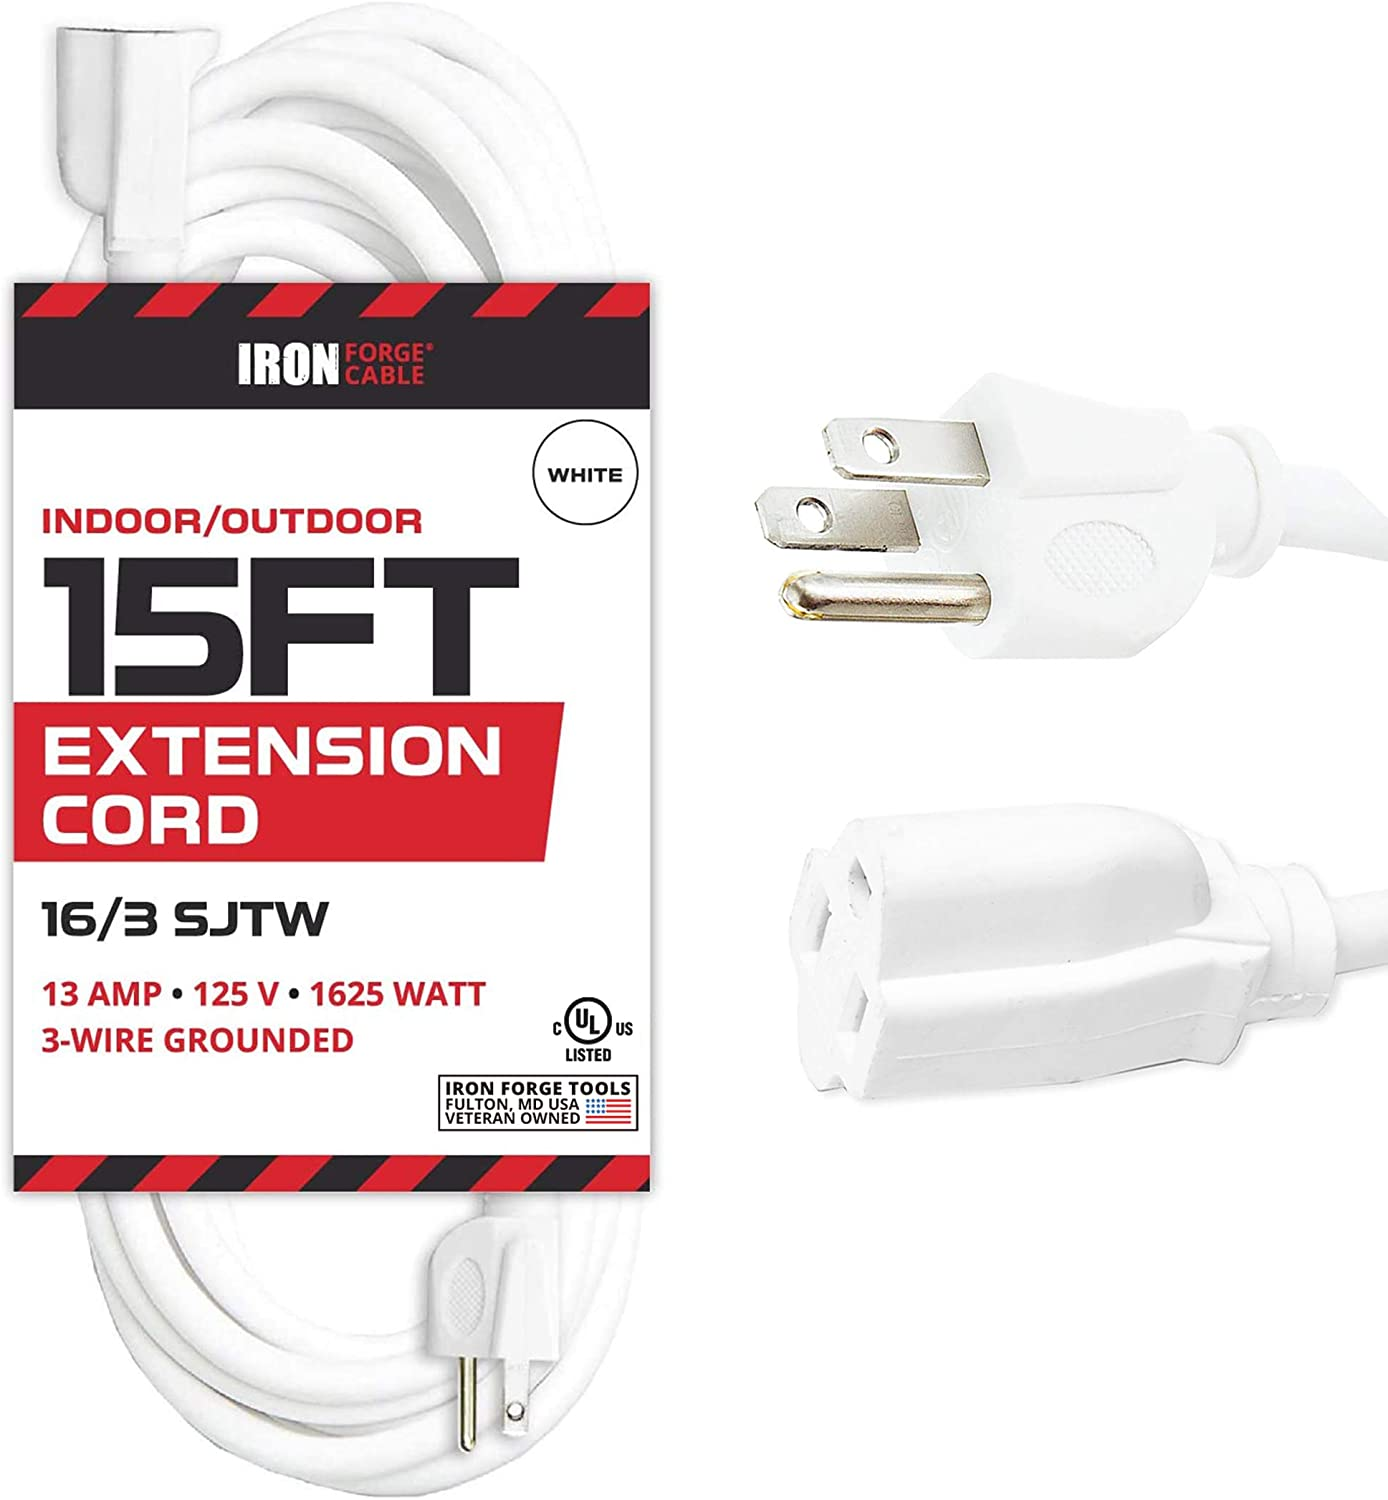 15 Ft White Extension Cord - 16/3 SJTW Durable Electrical Cable